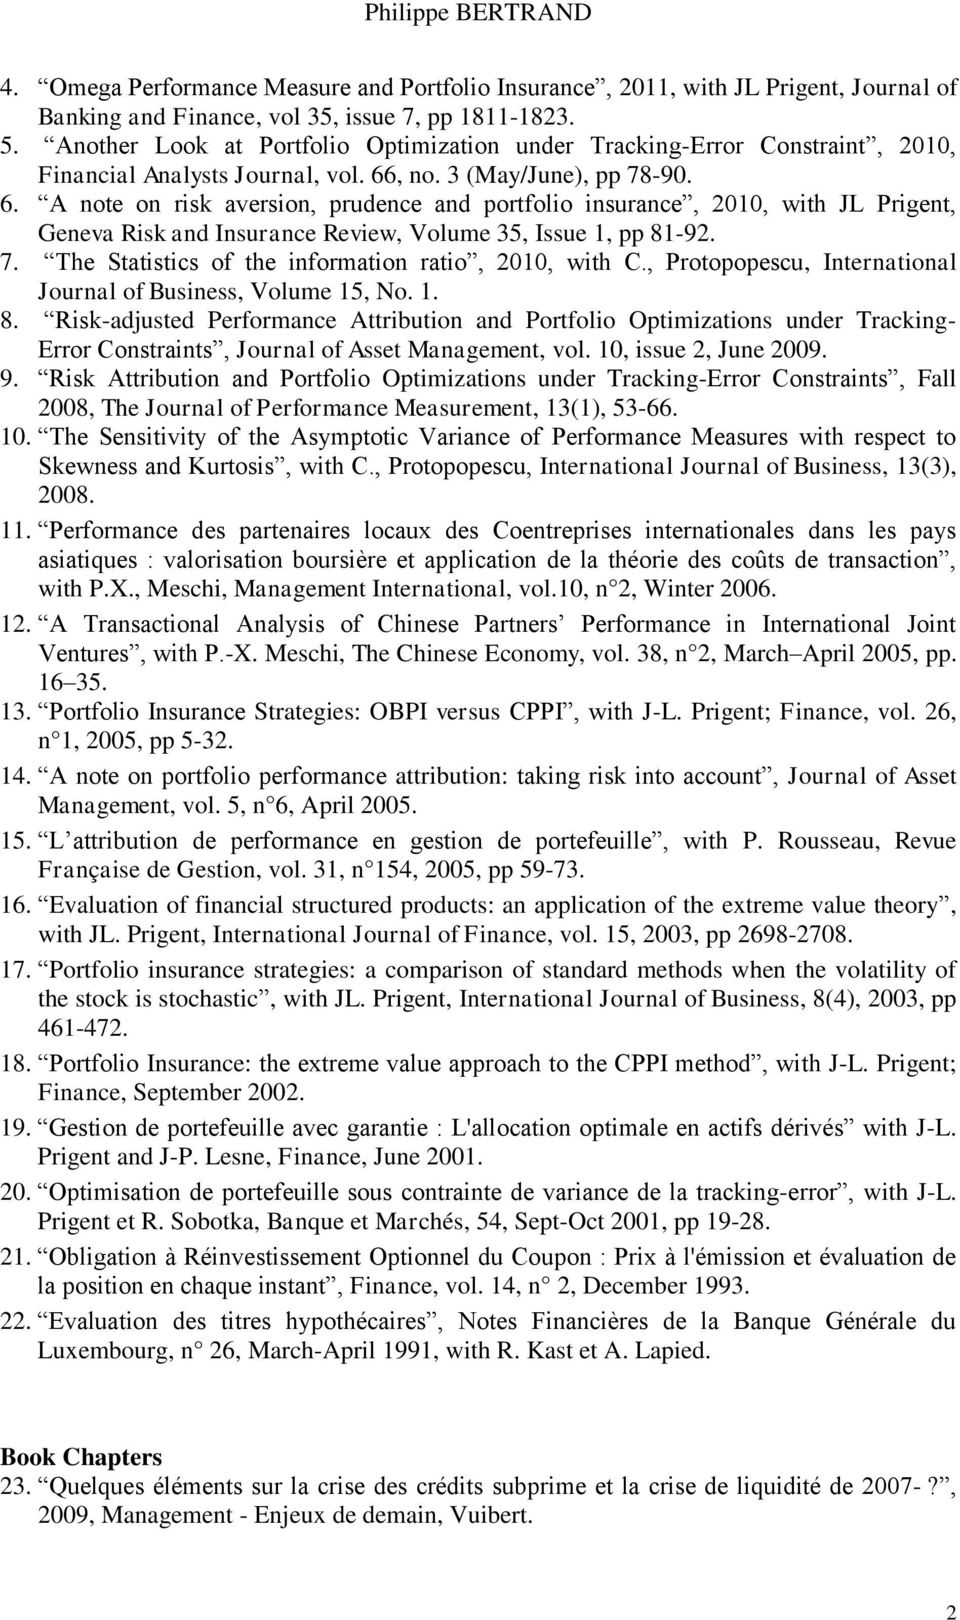 , no. 3 (May/June), pp 78-90. 6. A note on risk aversion, prudence and portfolio insurance, 2010, with JL Prigent, Geneva Risk and Insurance Review, Volume 35, Issue 1, pp 81-92. 7. The Statistics of the information ratio, 2010, with C.